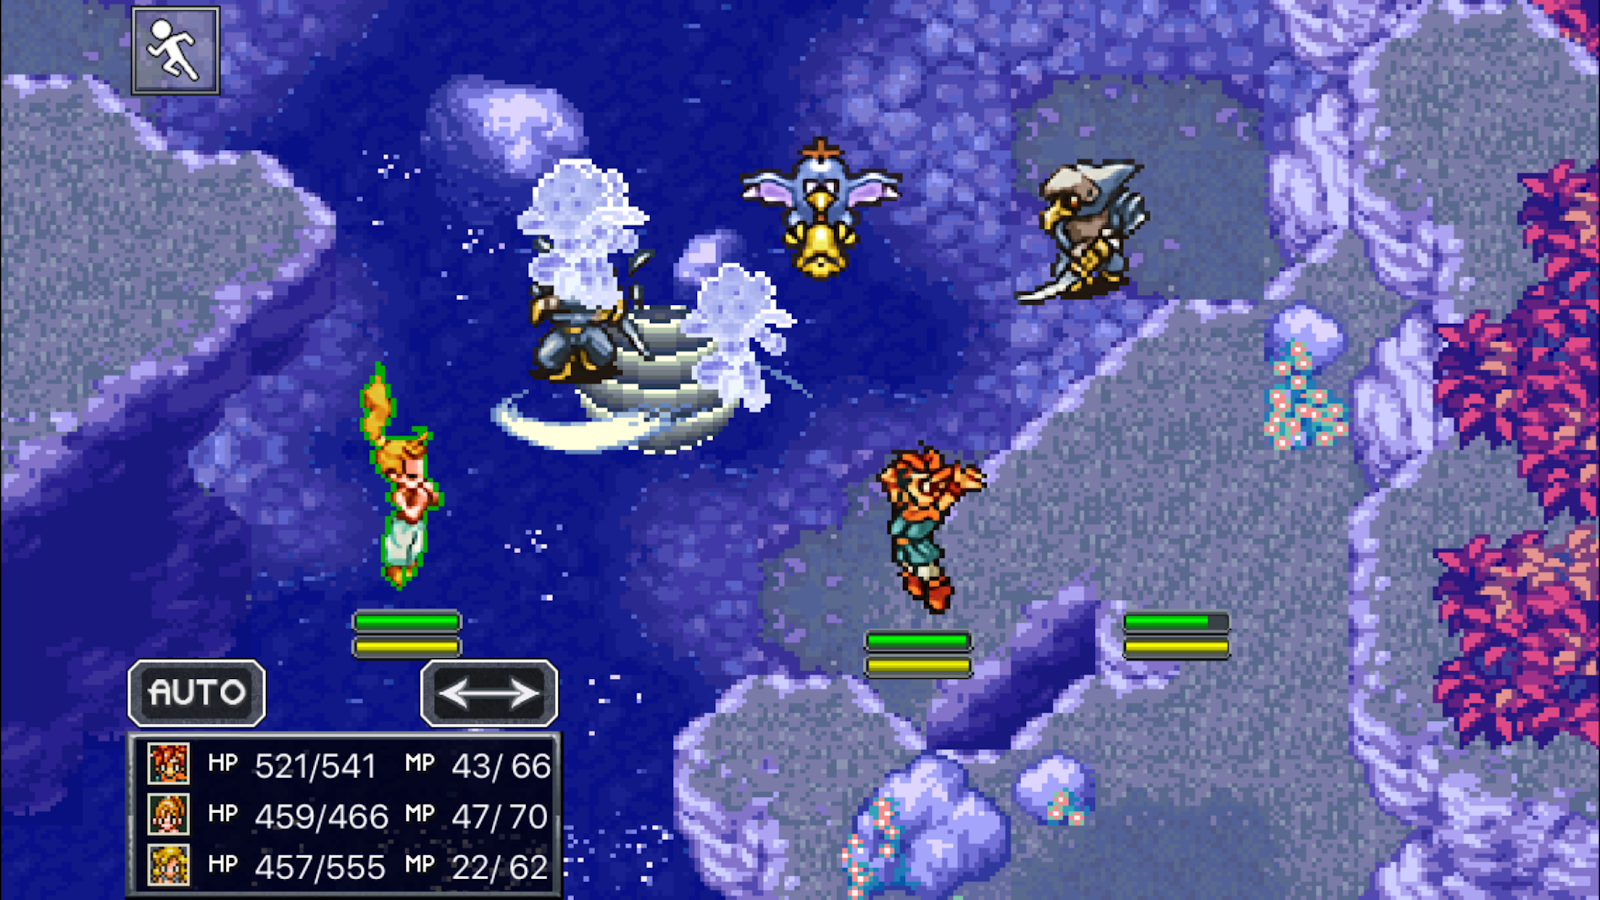 Chrono Trigger has been updated with new features to bring it up to